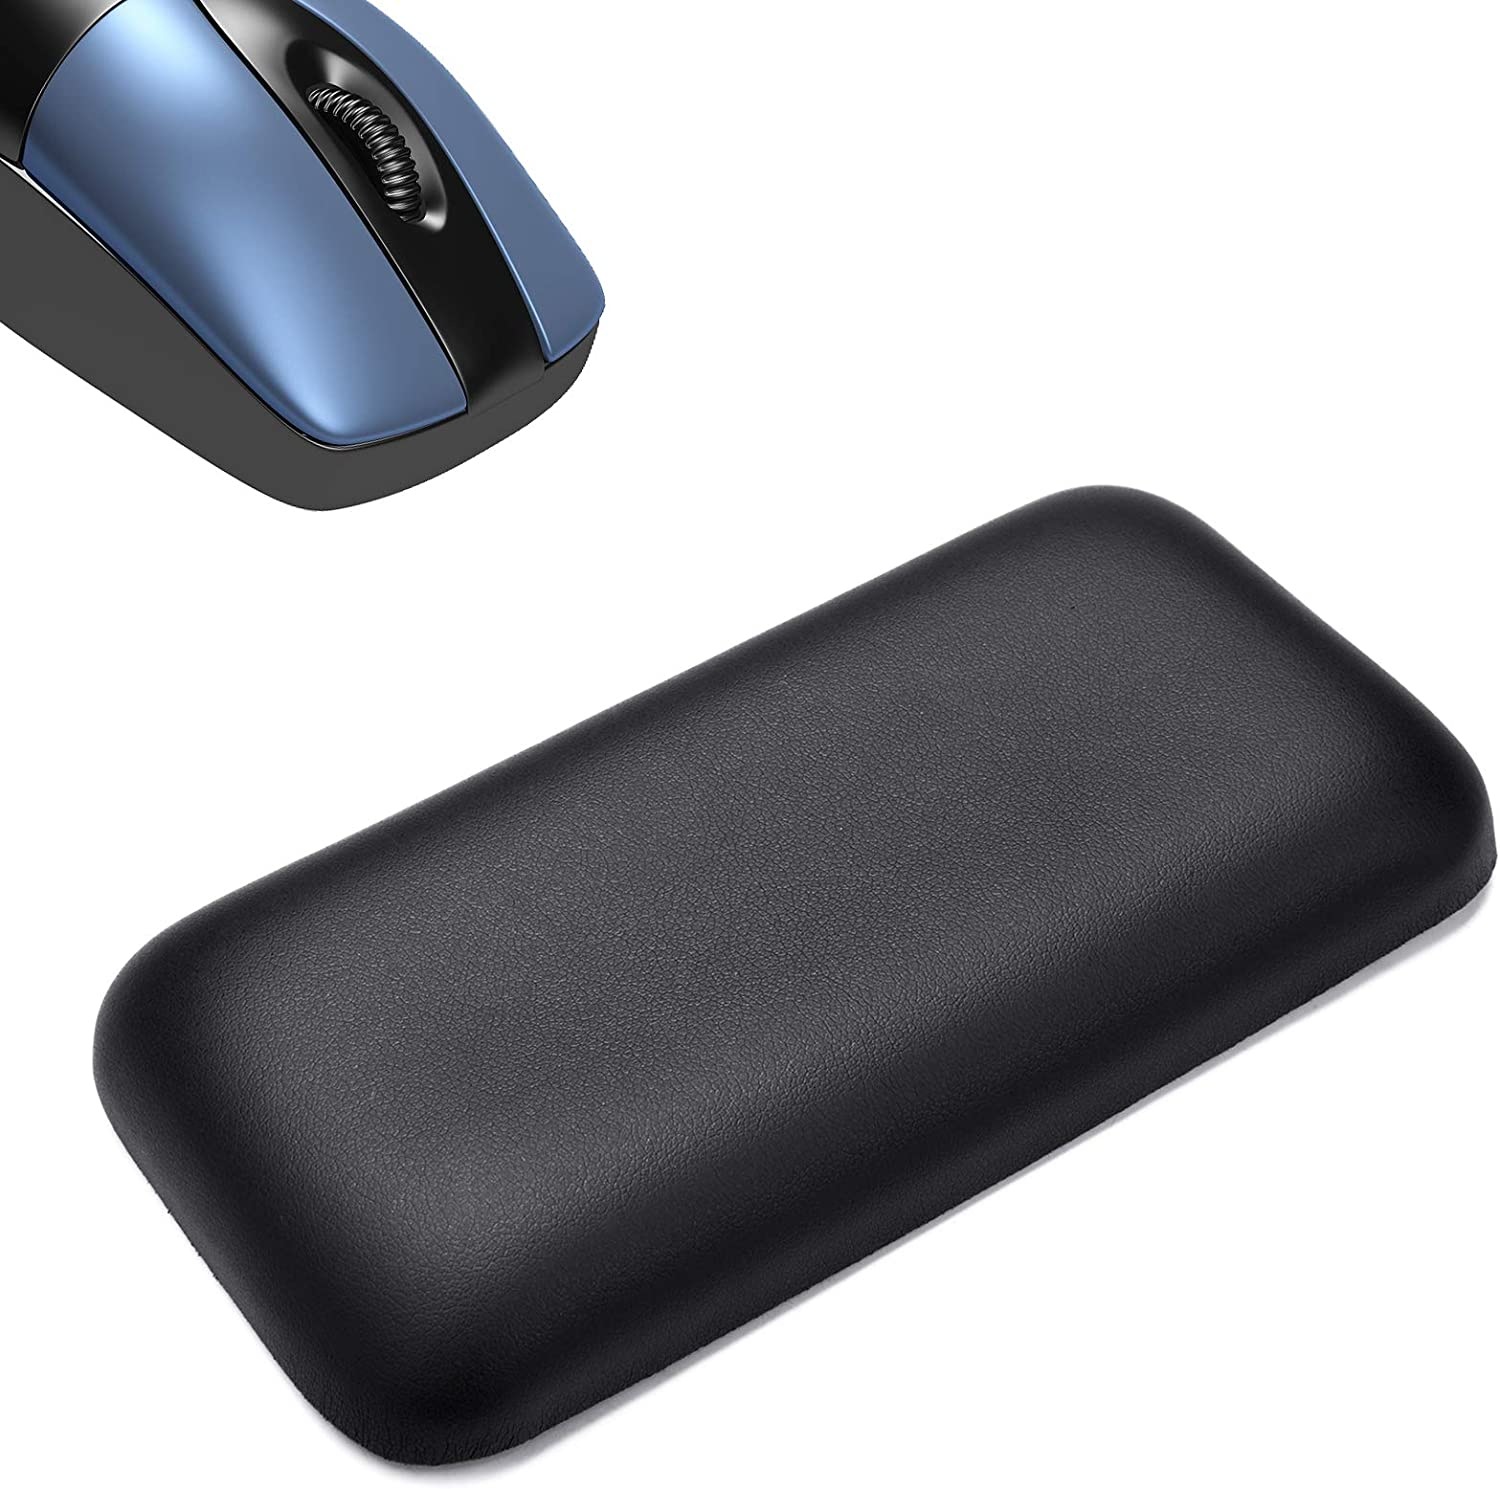 leather wrist rest support Mouse Wrist rest corporate gift mouse wrist pad Desk Accessory WORK FROM HOME ergonomic wrist support